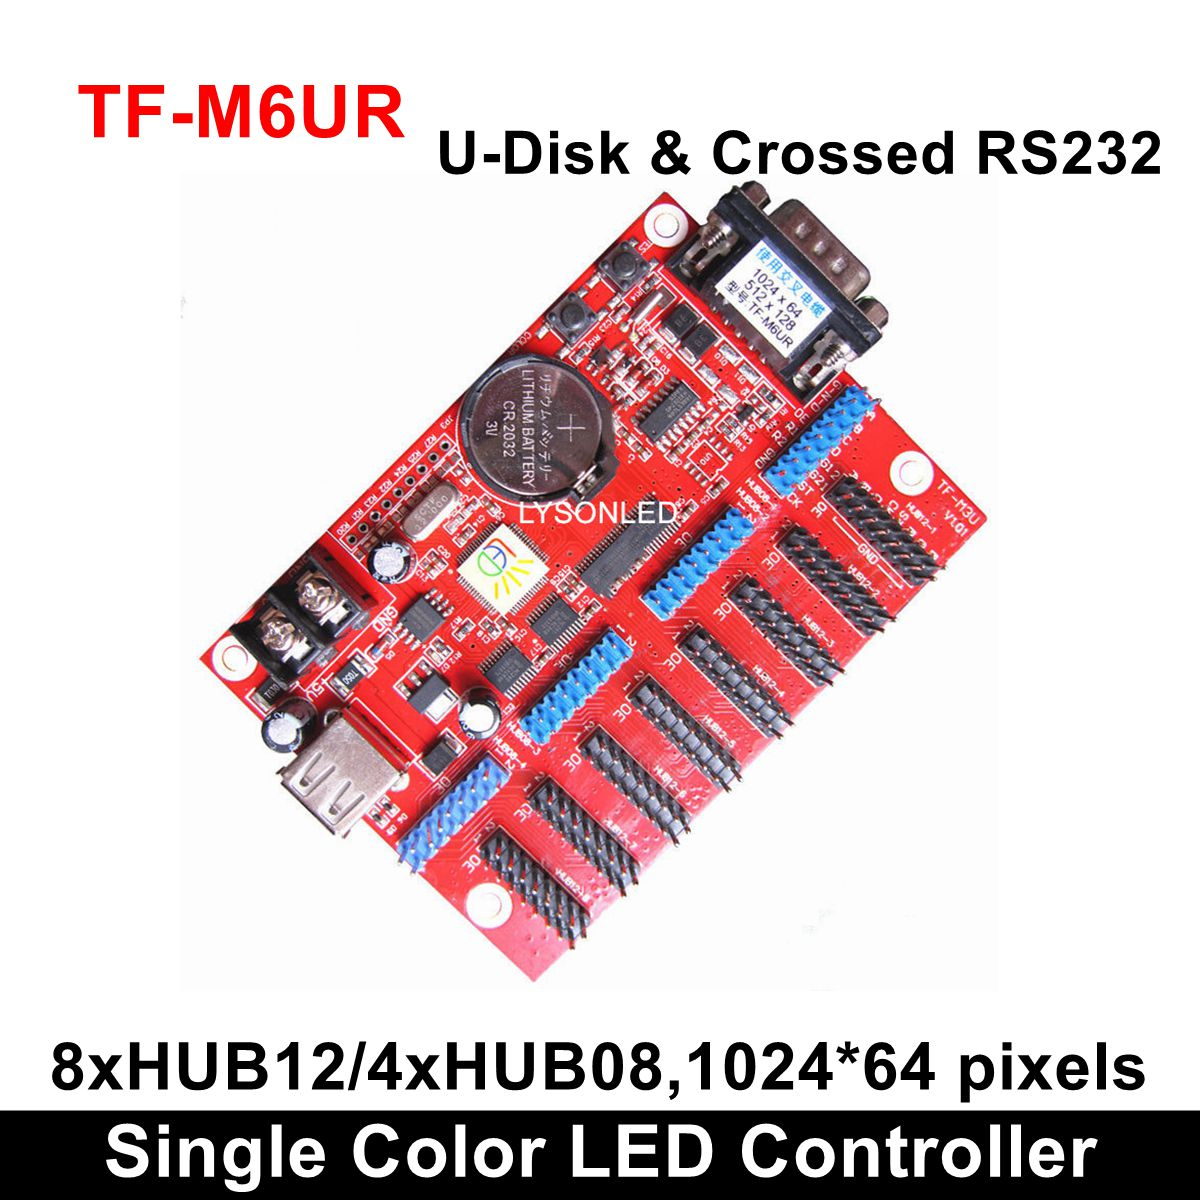 TF-MU TF-C6UR TF-M6UR Large USB Driver Port Single Color <font><b>LED</b></font> <font><b>Card</b></font> <font><b>Control</b></font> P4.75/P7.62/<font><b>P10</b></font> Monochrome/Dual <font><b>LED</b></font> Matrix <font><b>Module</b></font> image